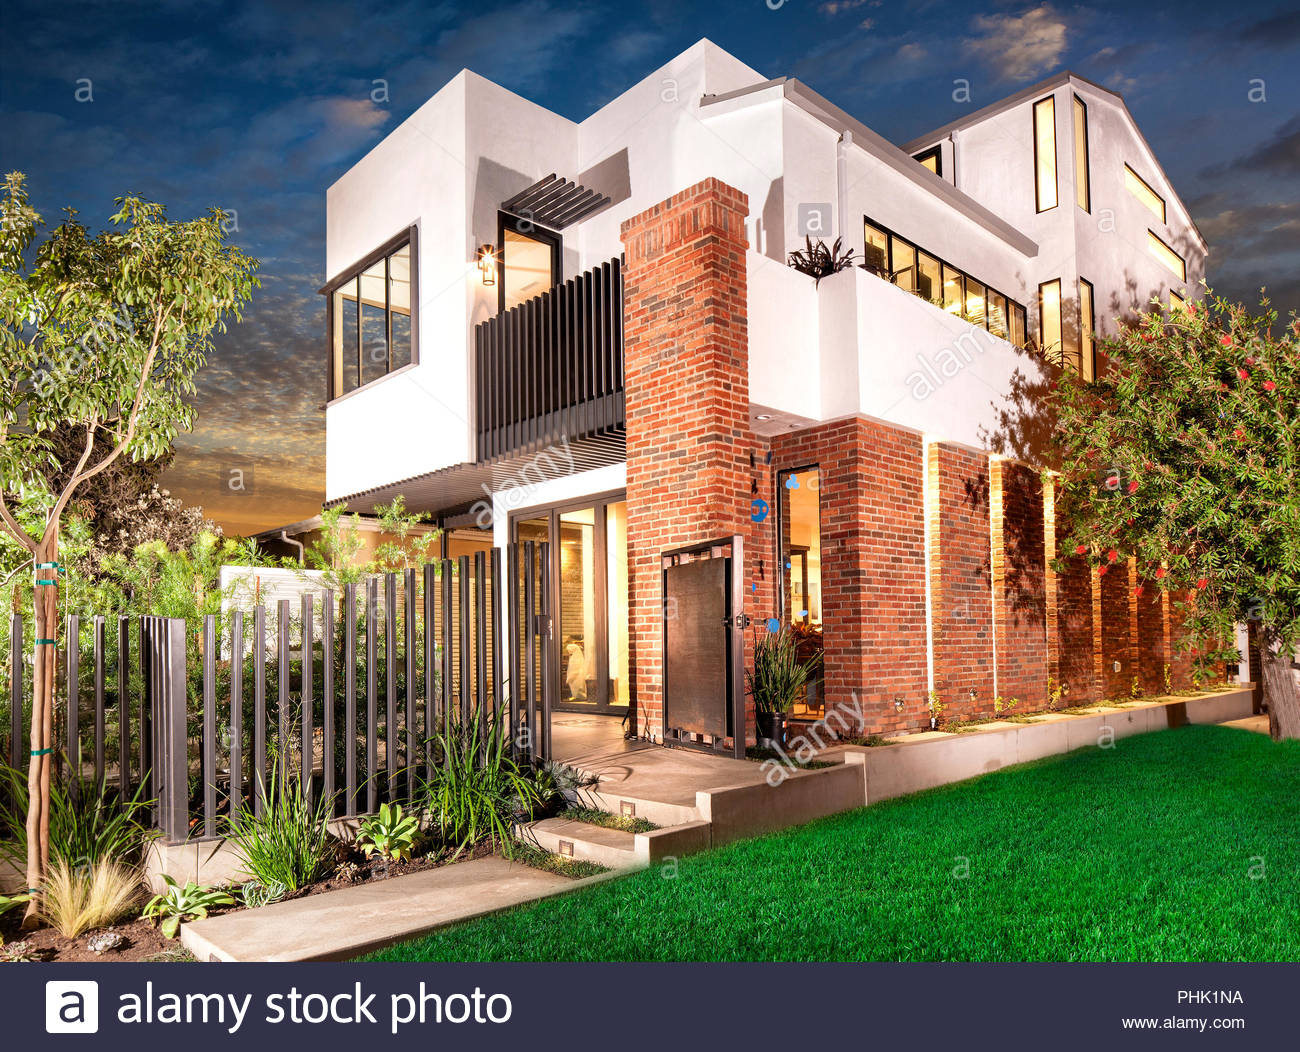 House and garden exterior at sunset - Stock Image